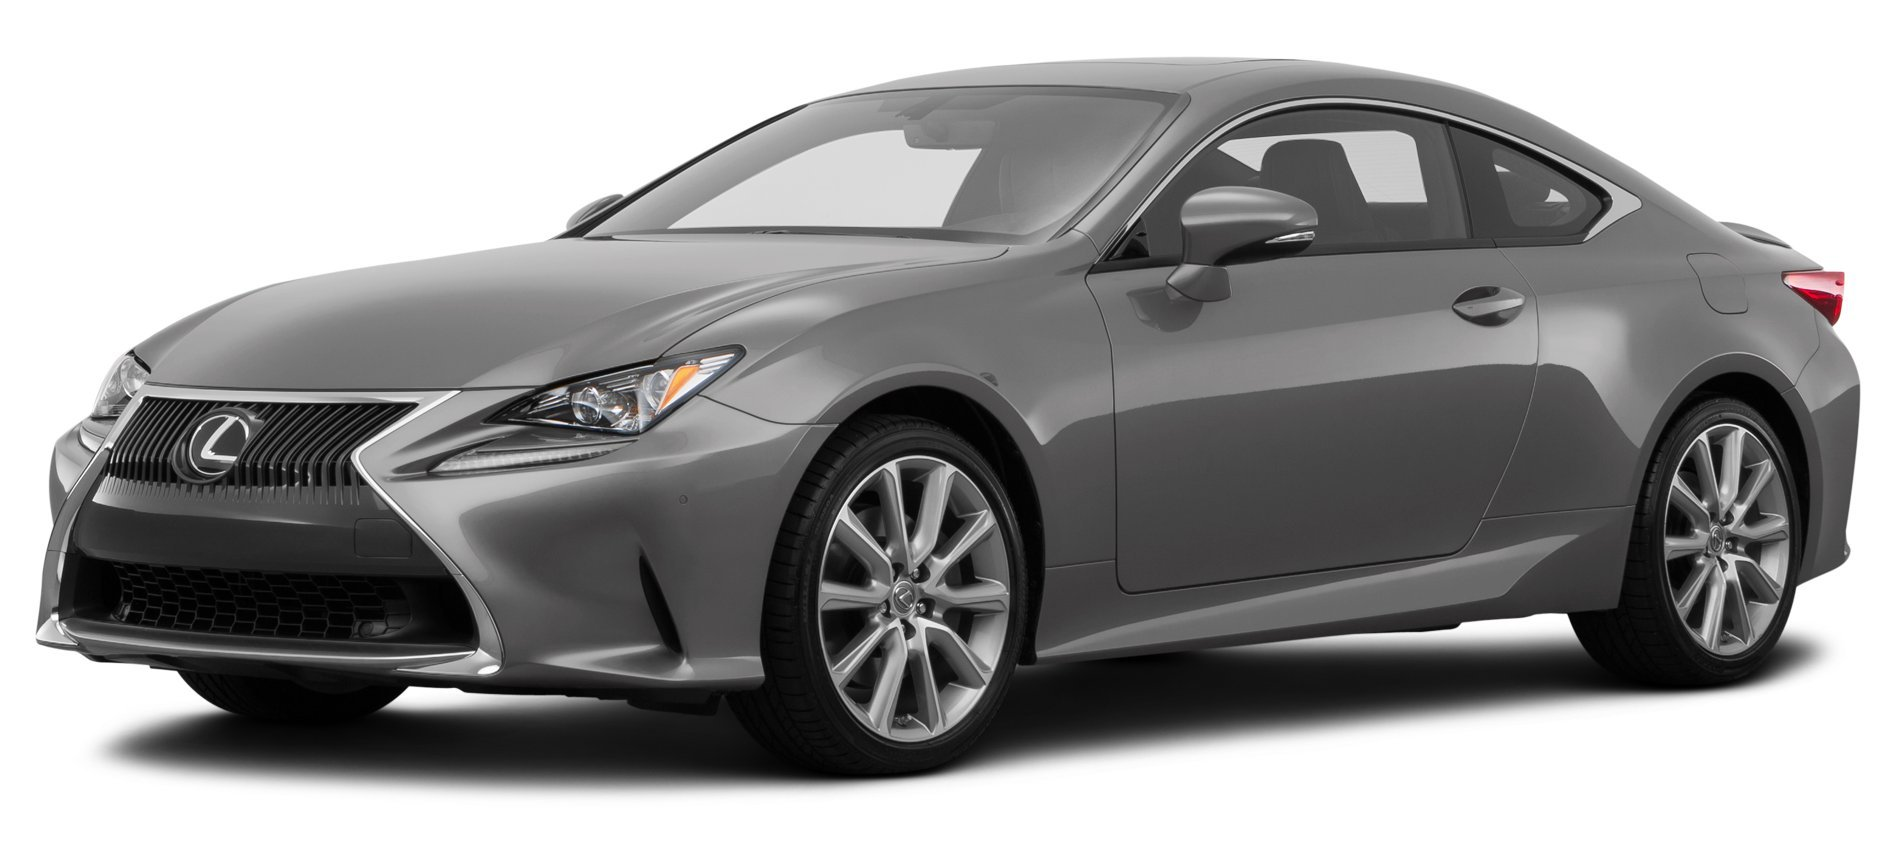 2016 Lexus RC300, 2 Door Coupe ...